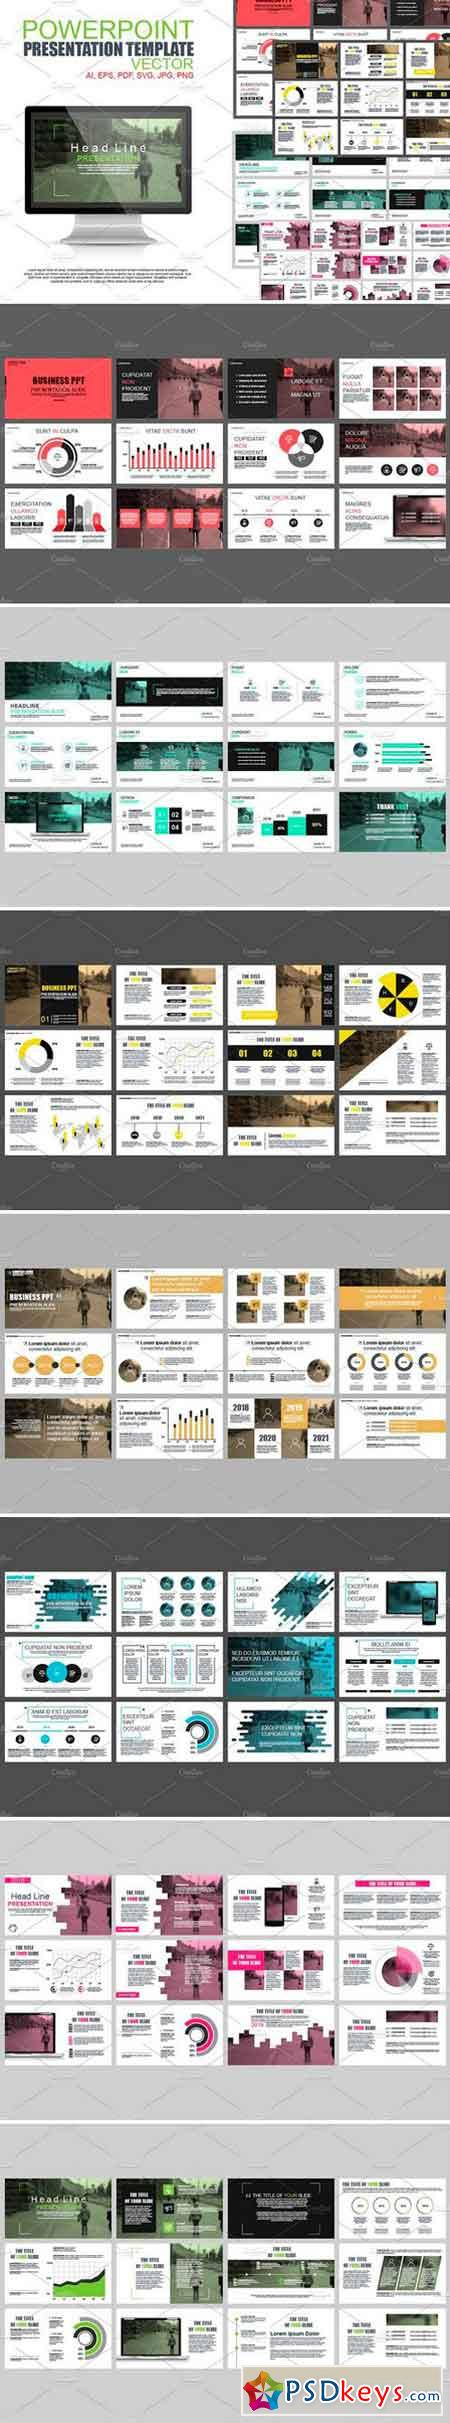 Powerpoint Presentation Templates 2544576